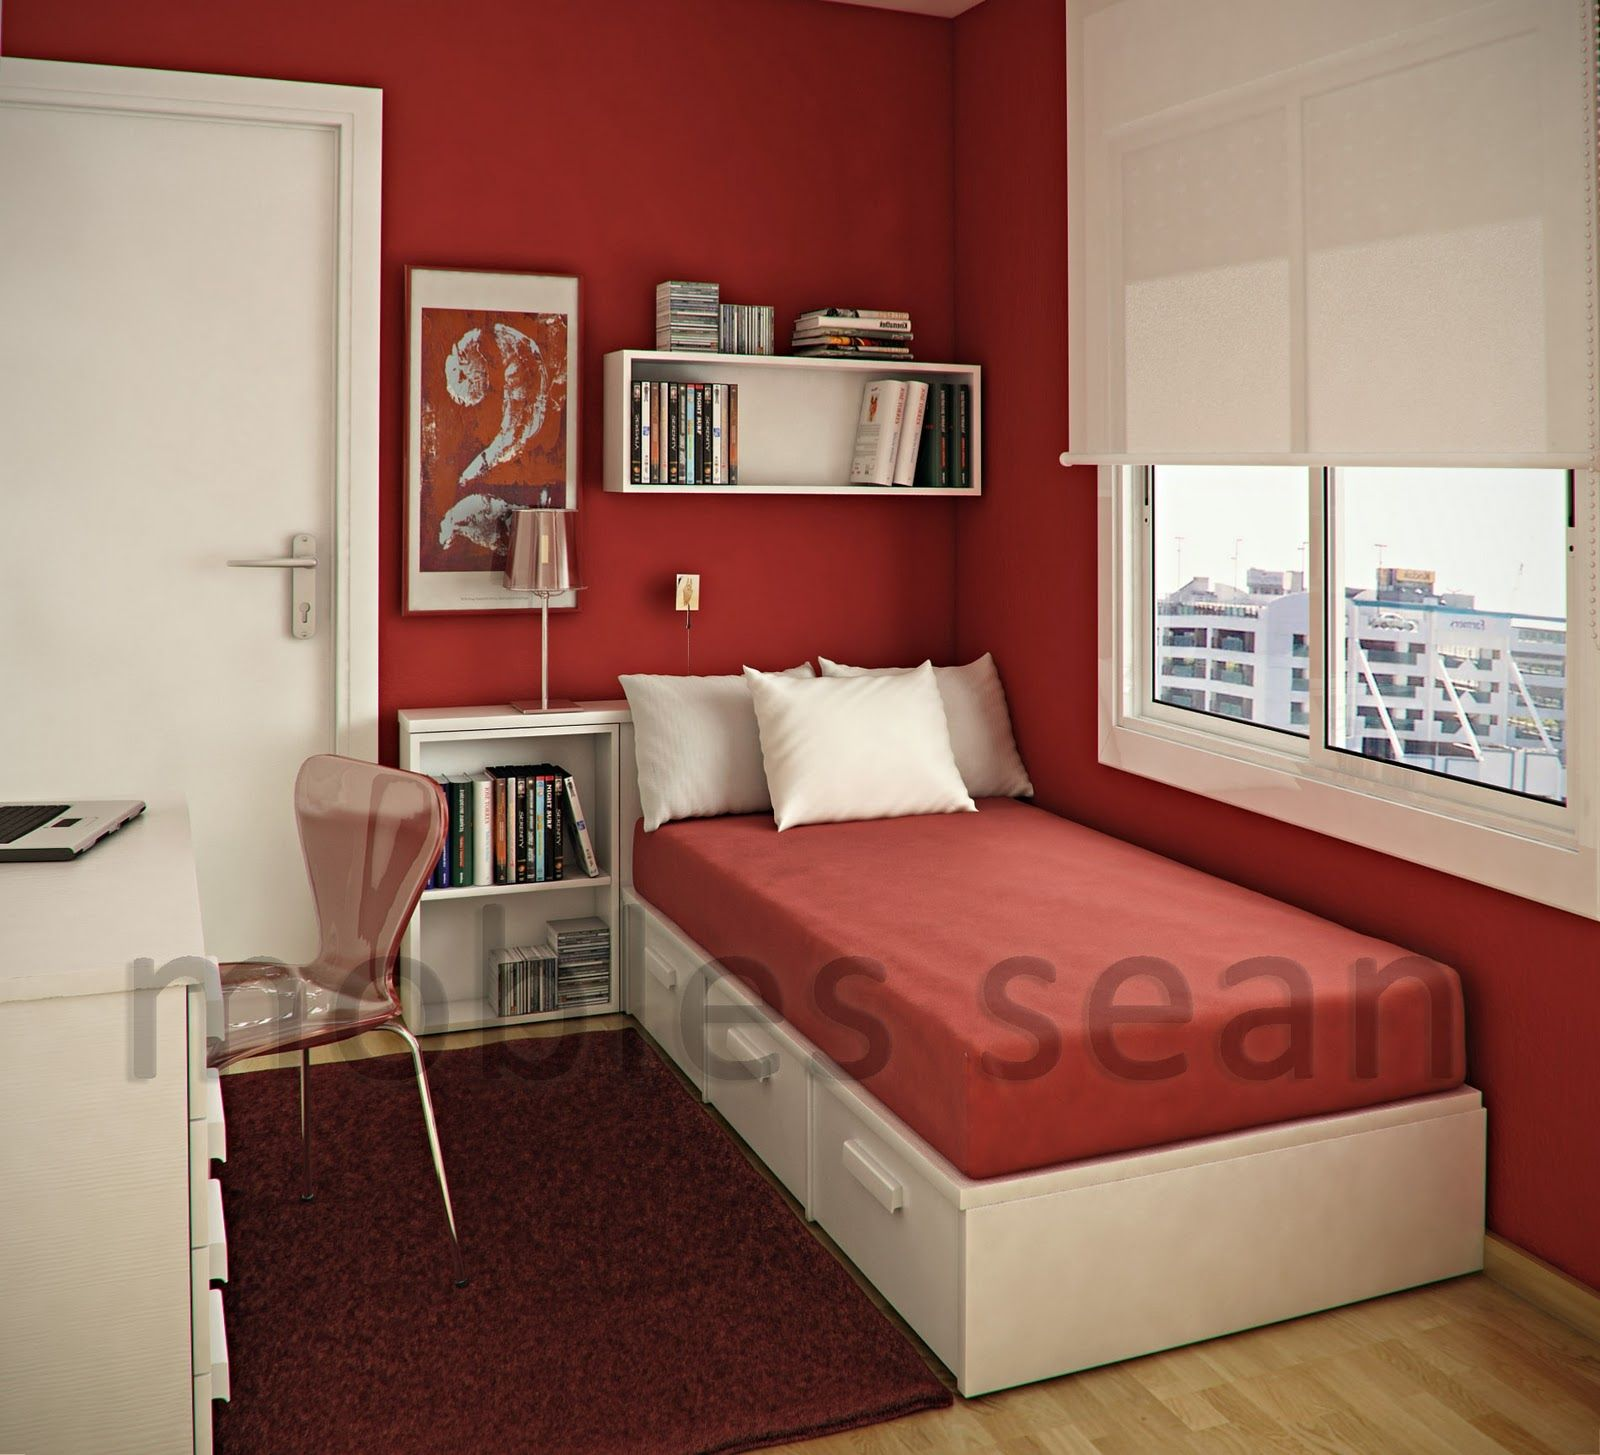 Decoration Ideas For Small Bedroom | Bedroom Designs India, Simple Bedroom, Red Bedroom Walls